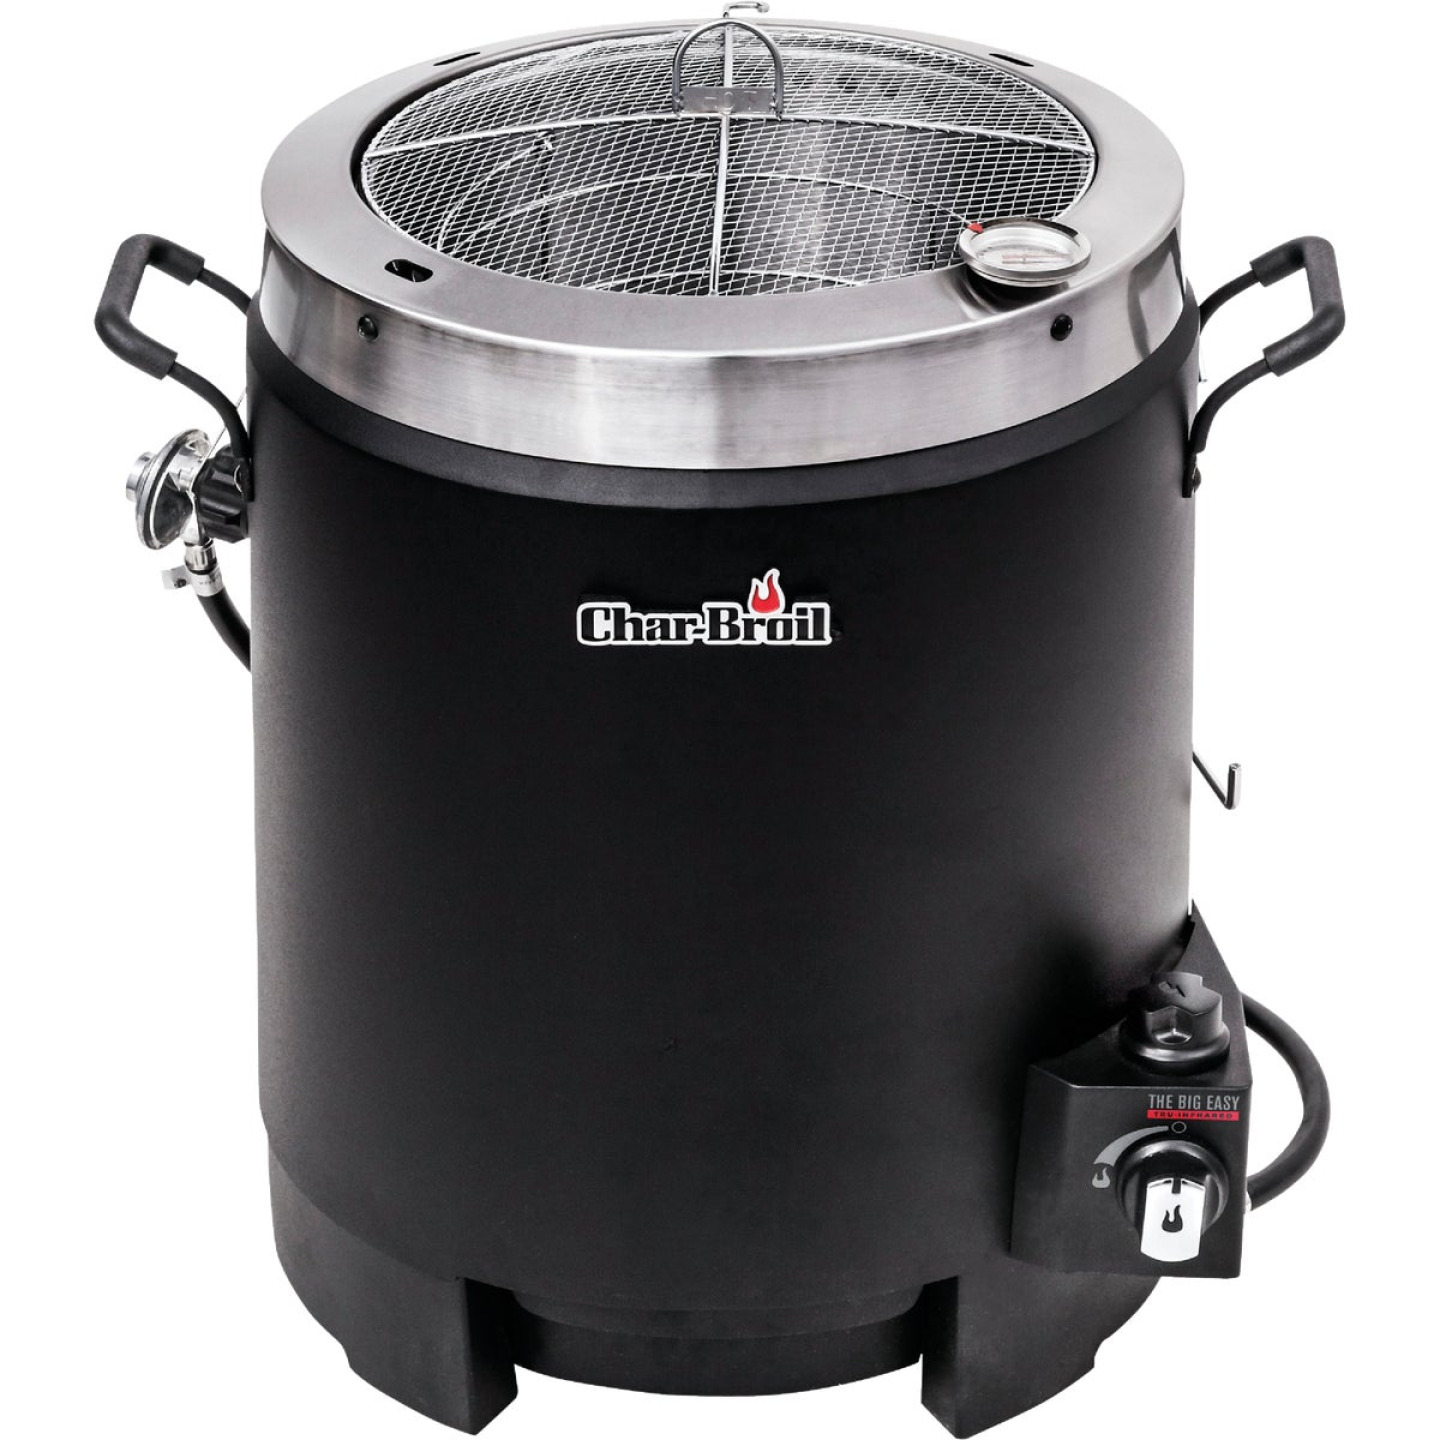 Char-Broil Big Easy 16 Lb. Stainless Steel Oil-Less Turkey Outdoor Fryer Image 1